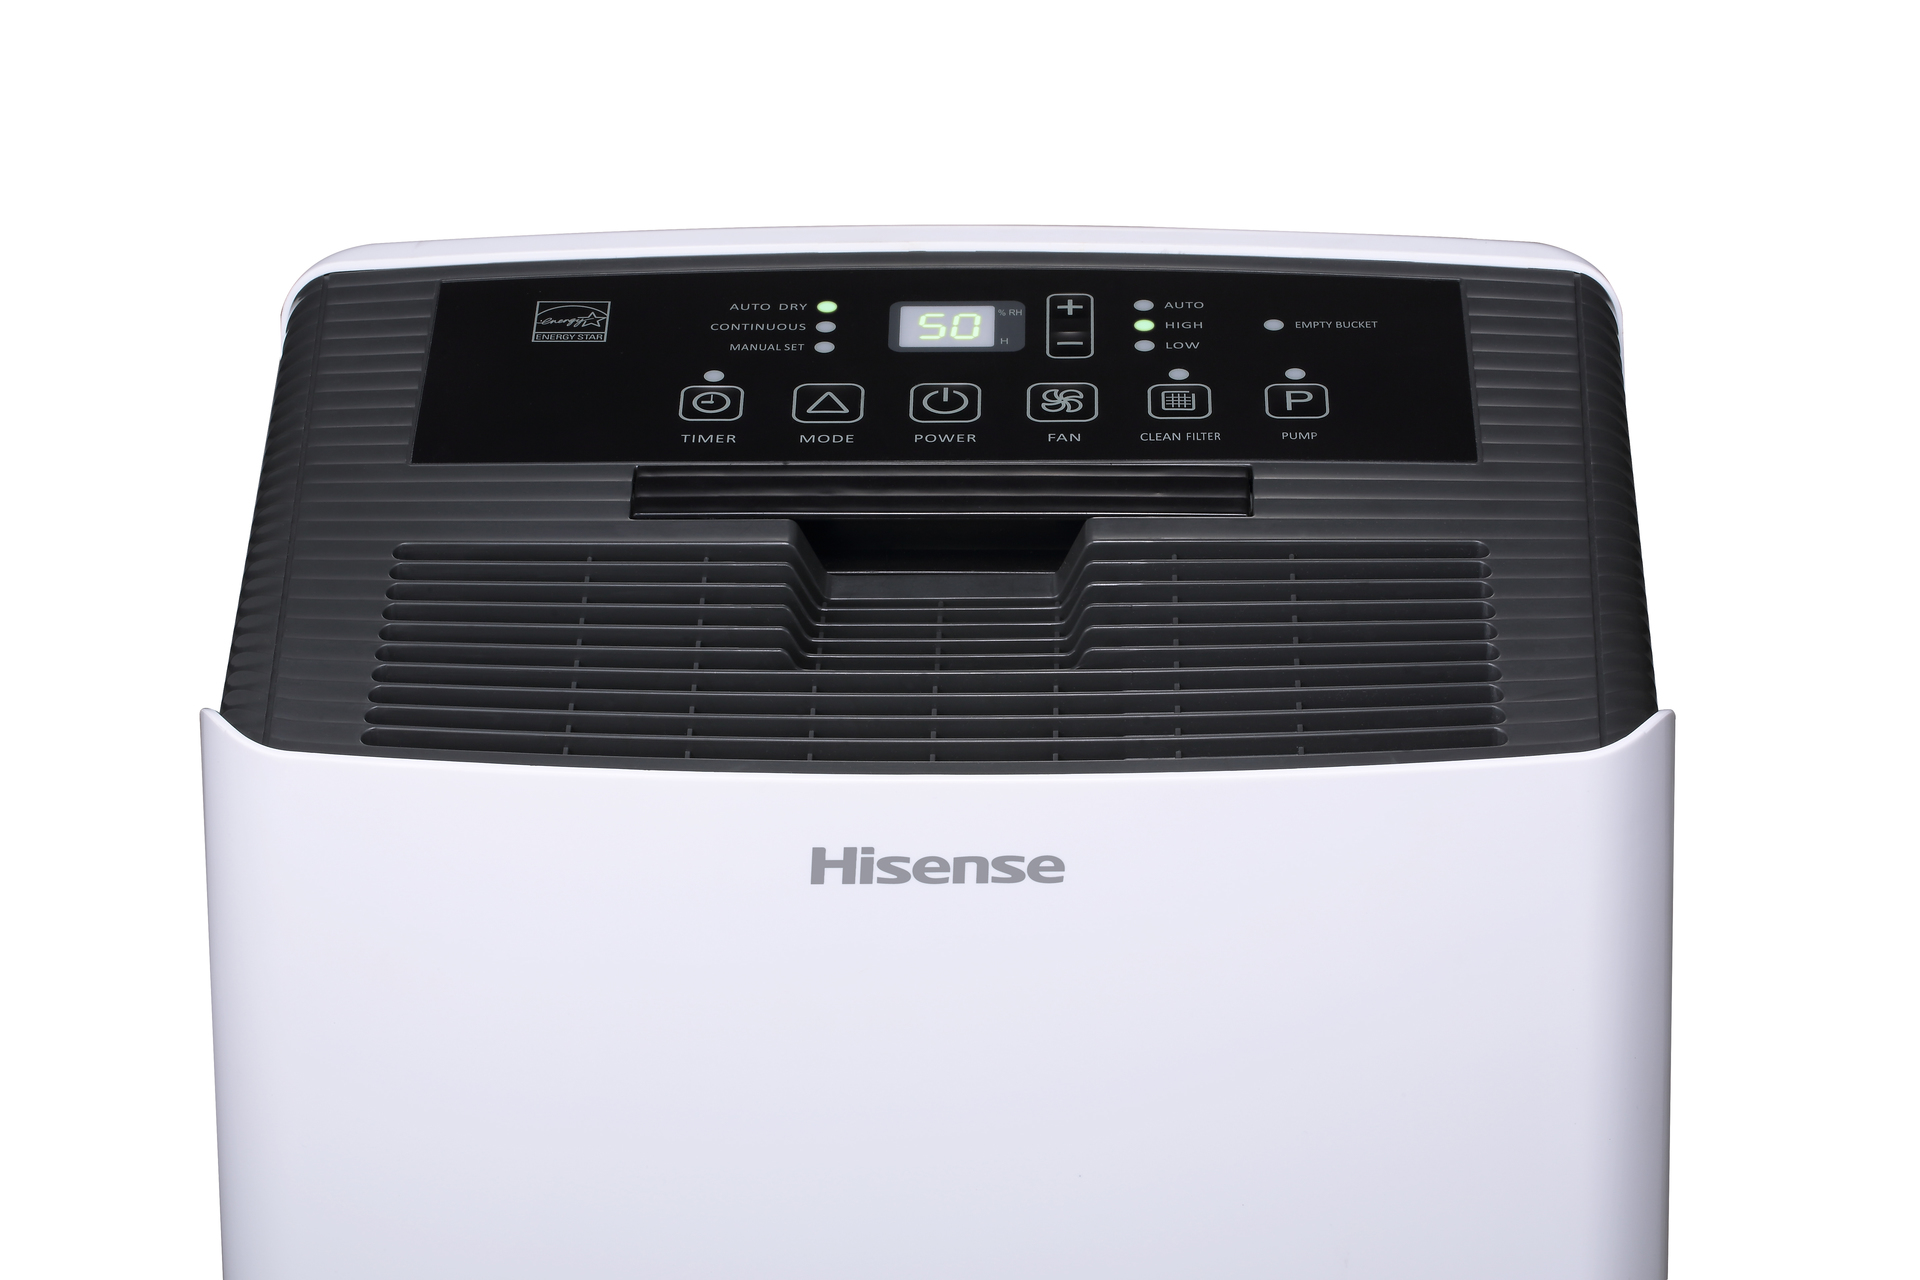 Hisense 70 2-Speed Dehumidifier with Built-In Pump ENERGY STAR at